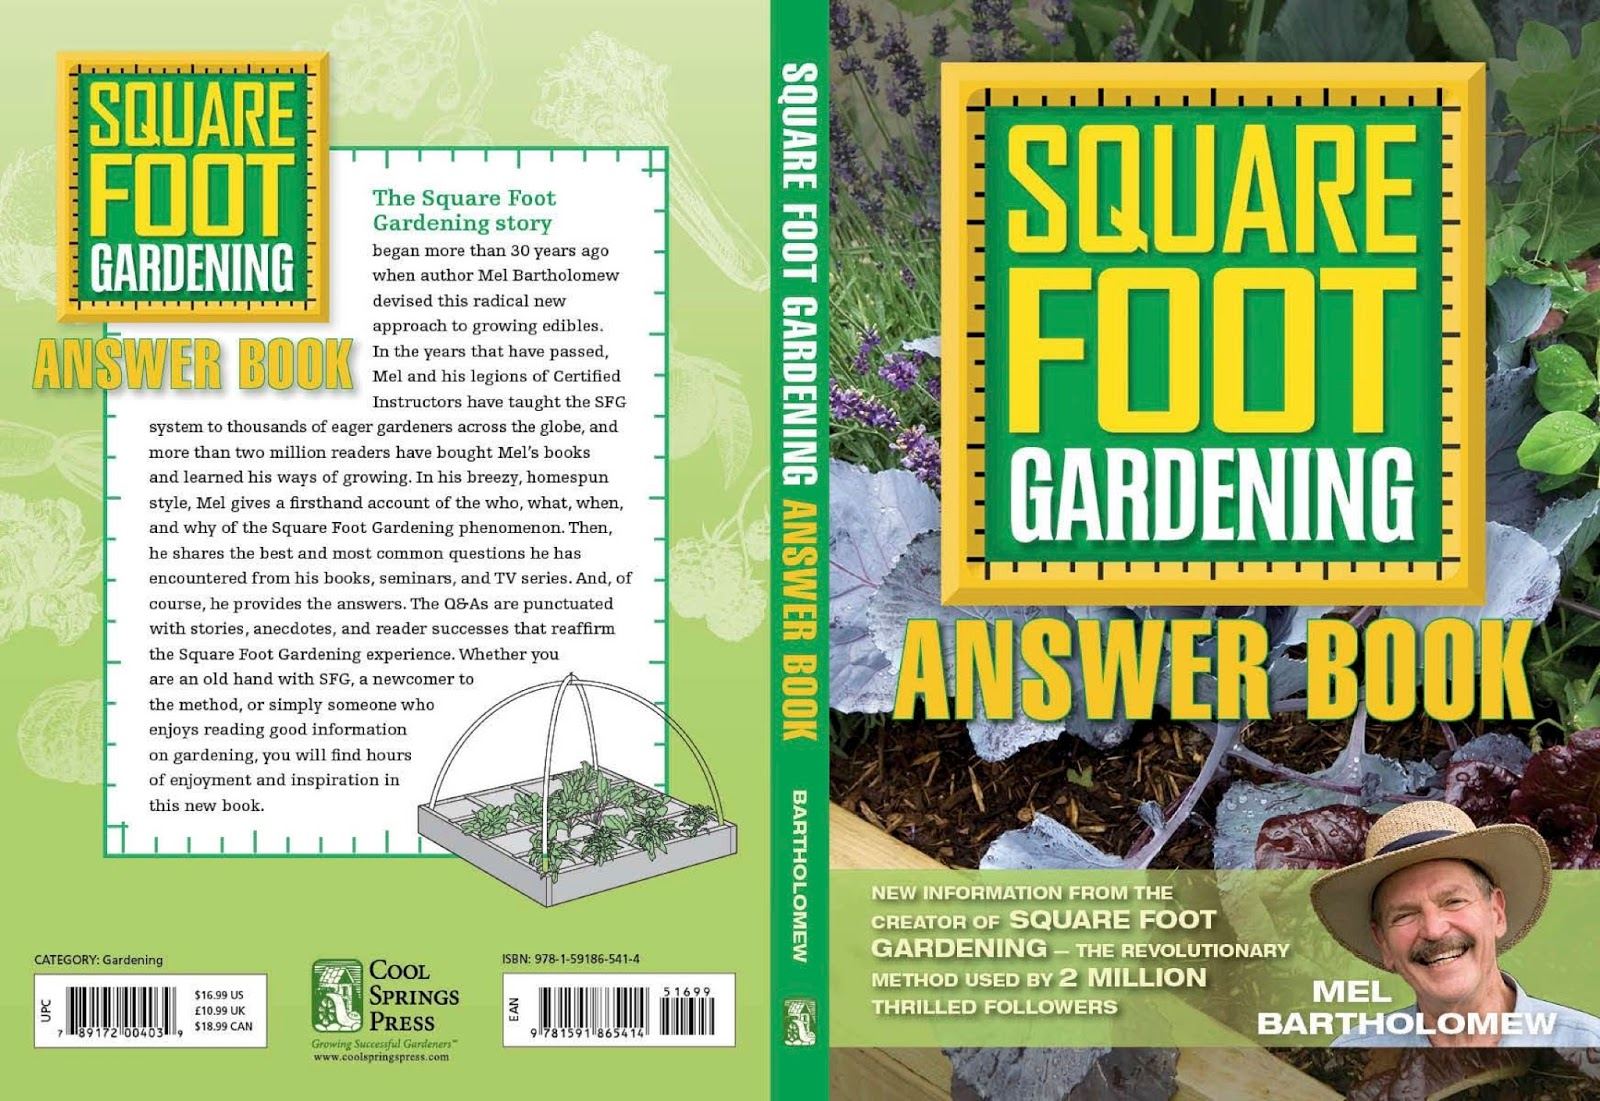 Square foot gardening book -  Reprint This Helpful And Popular Book That Answers So Many Common Questions People Have About Sfg If You Don T Have A Copy Be Sure To Get One Today